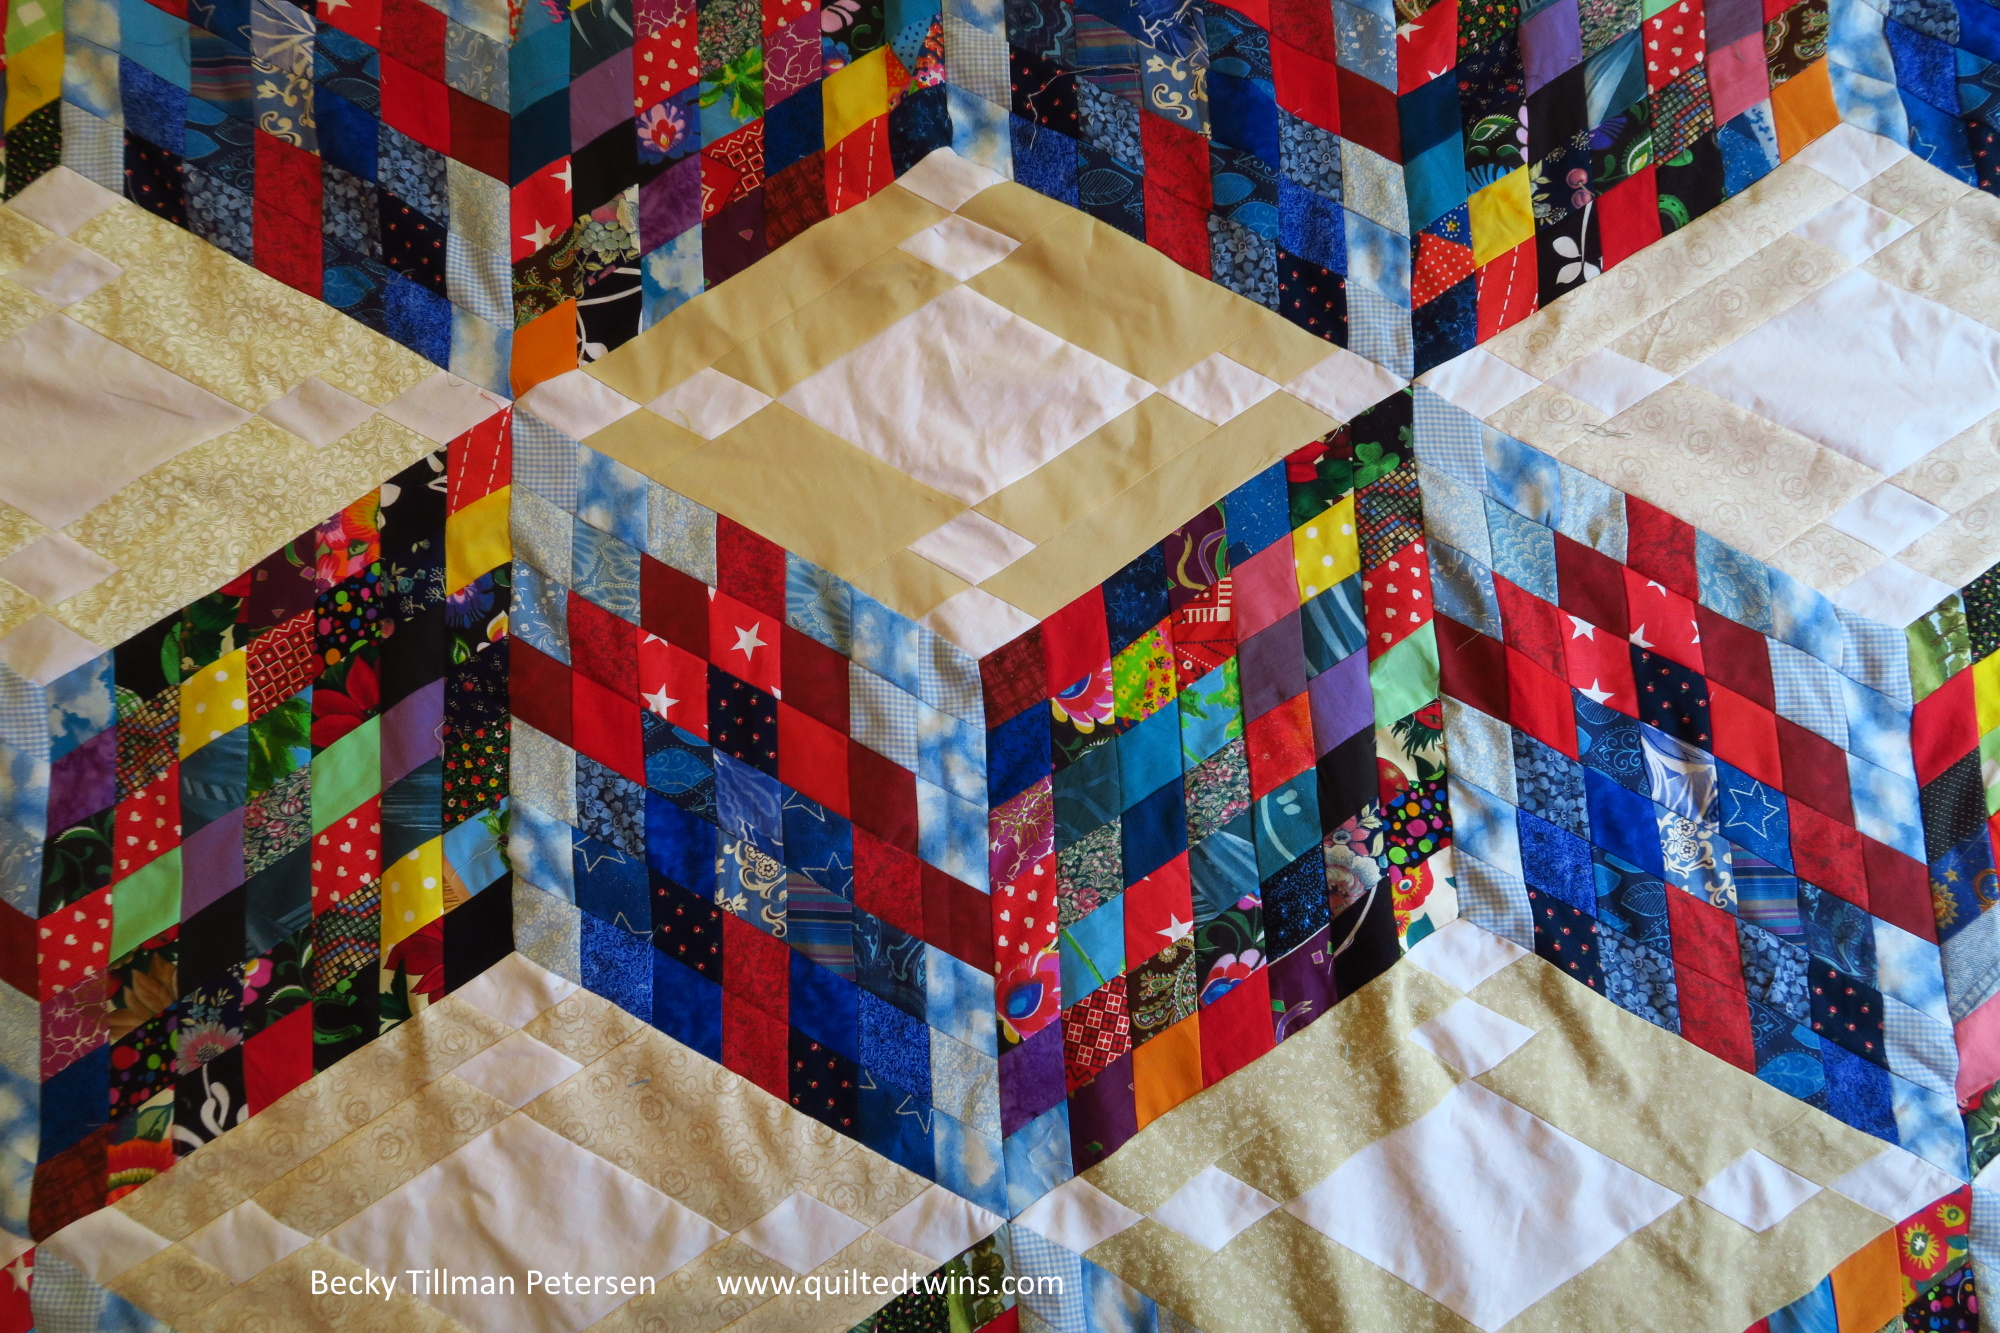 How am I going to quilt this one? At this point, I literally have no idea - none at all!